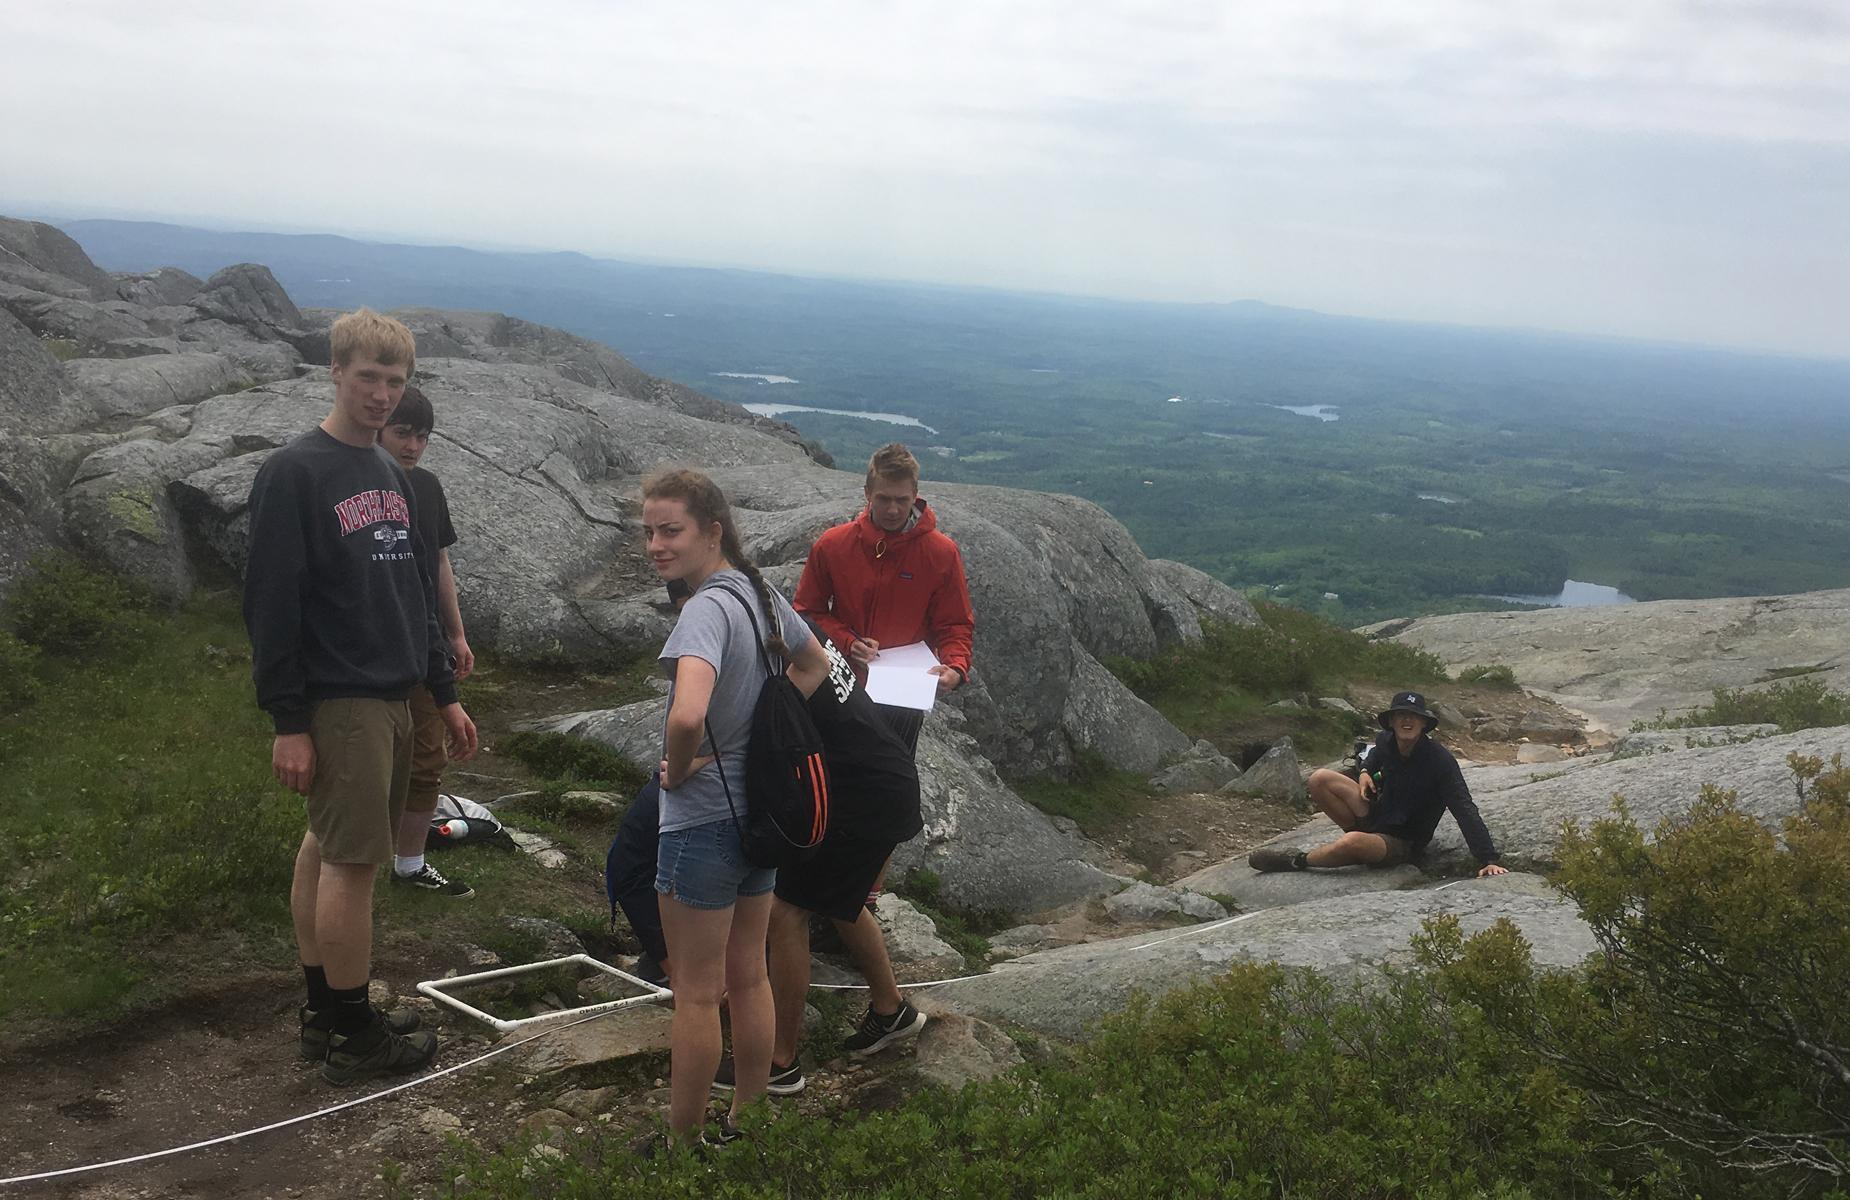 Students doing research on Mt. Monadnock